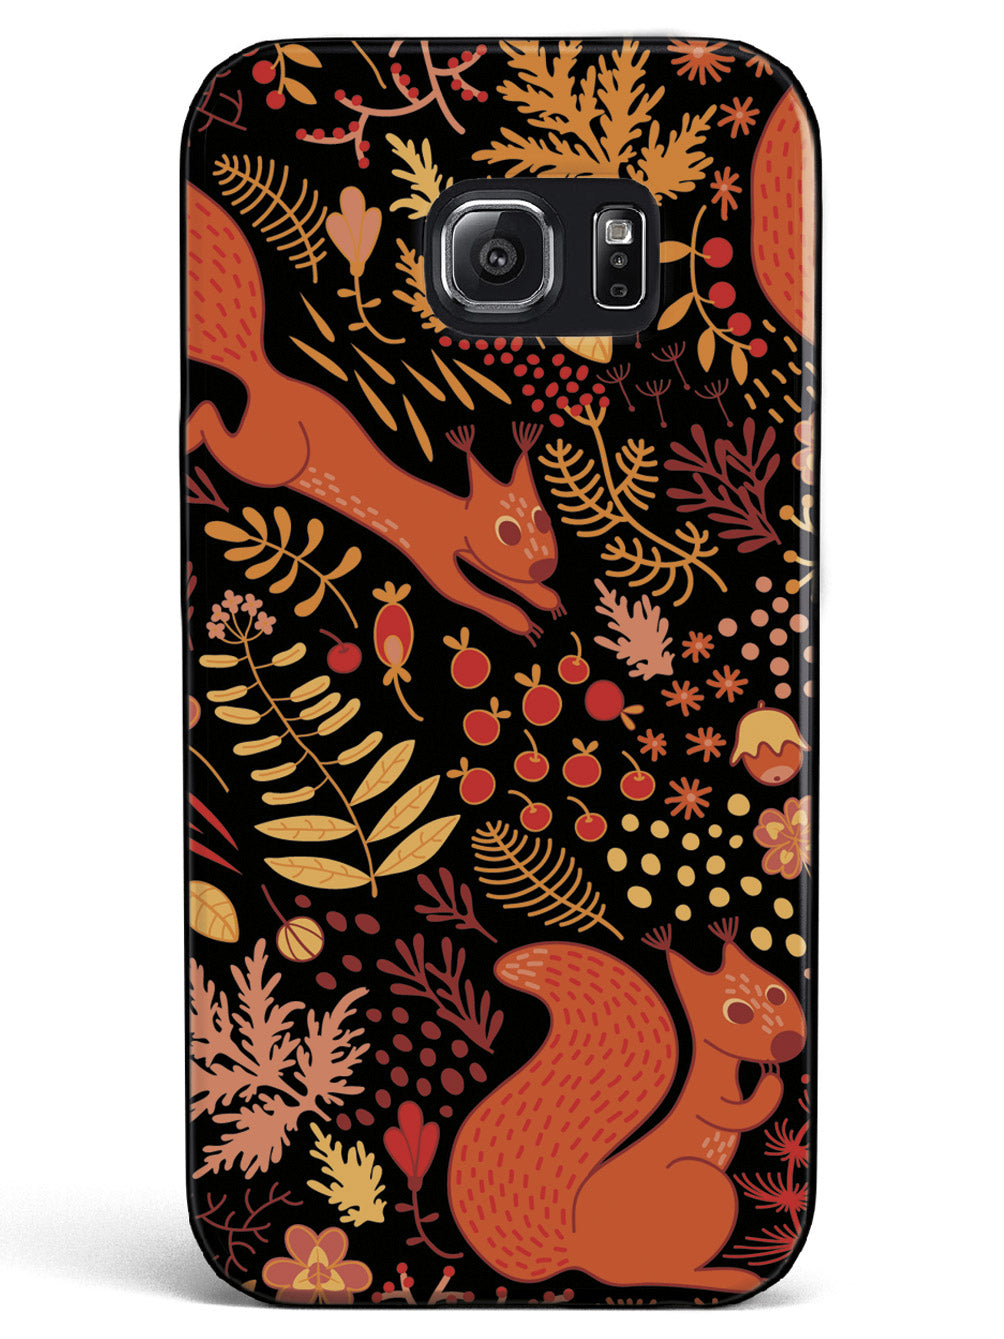 Squirrel Fall Pattern - Black Case